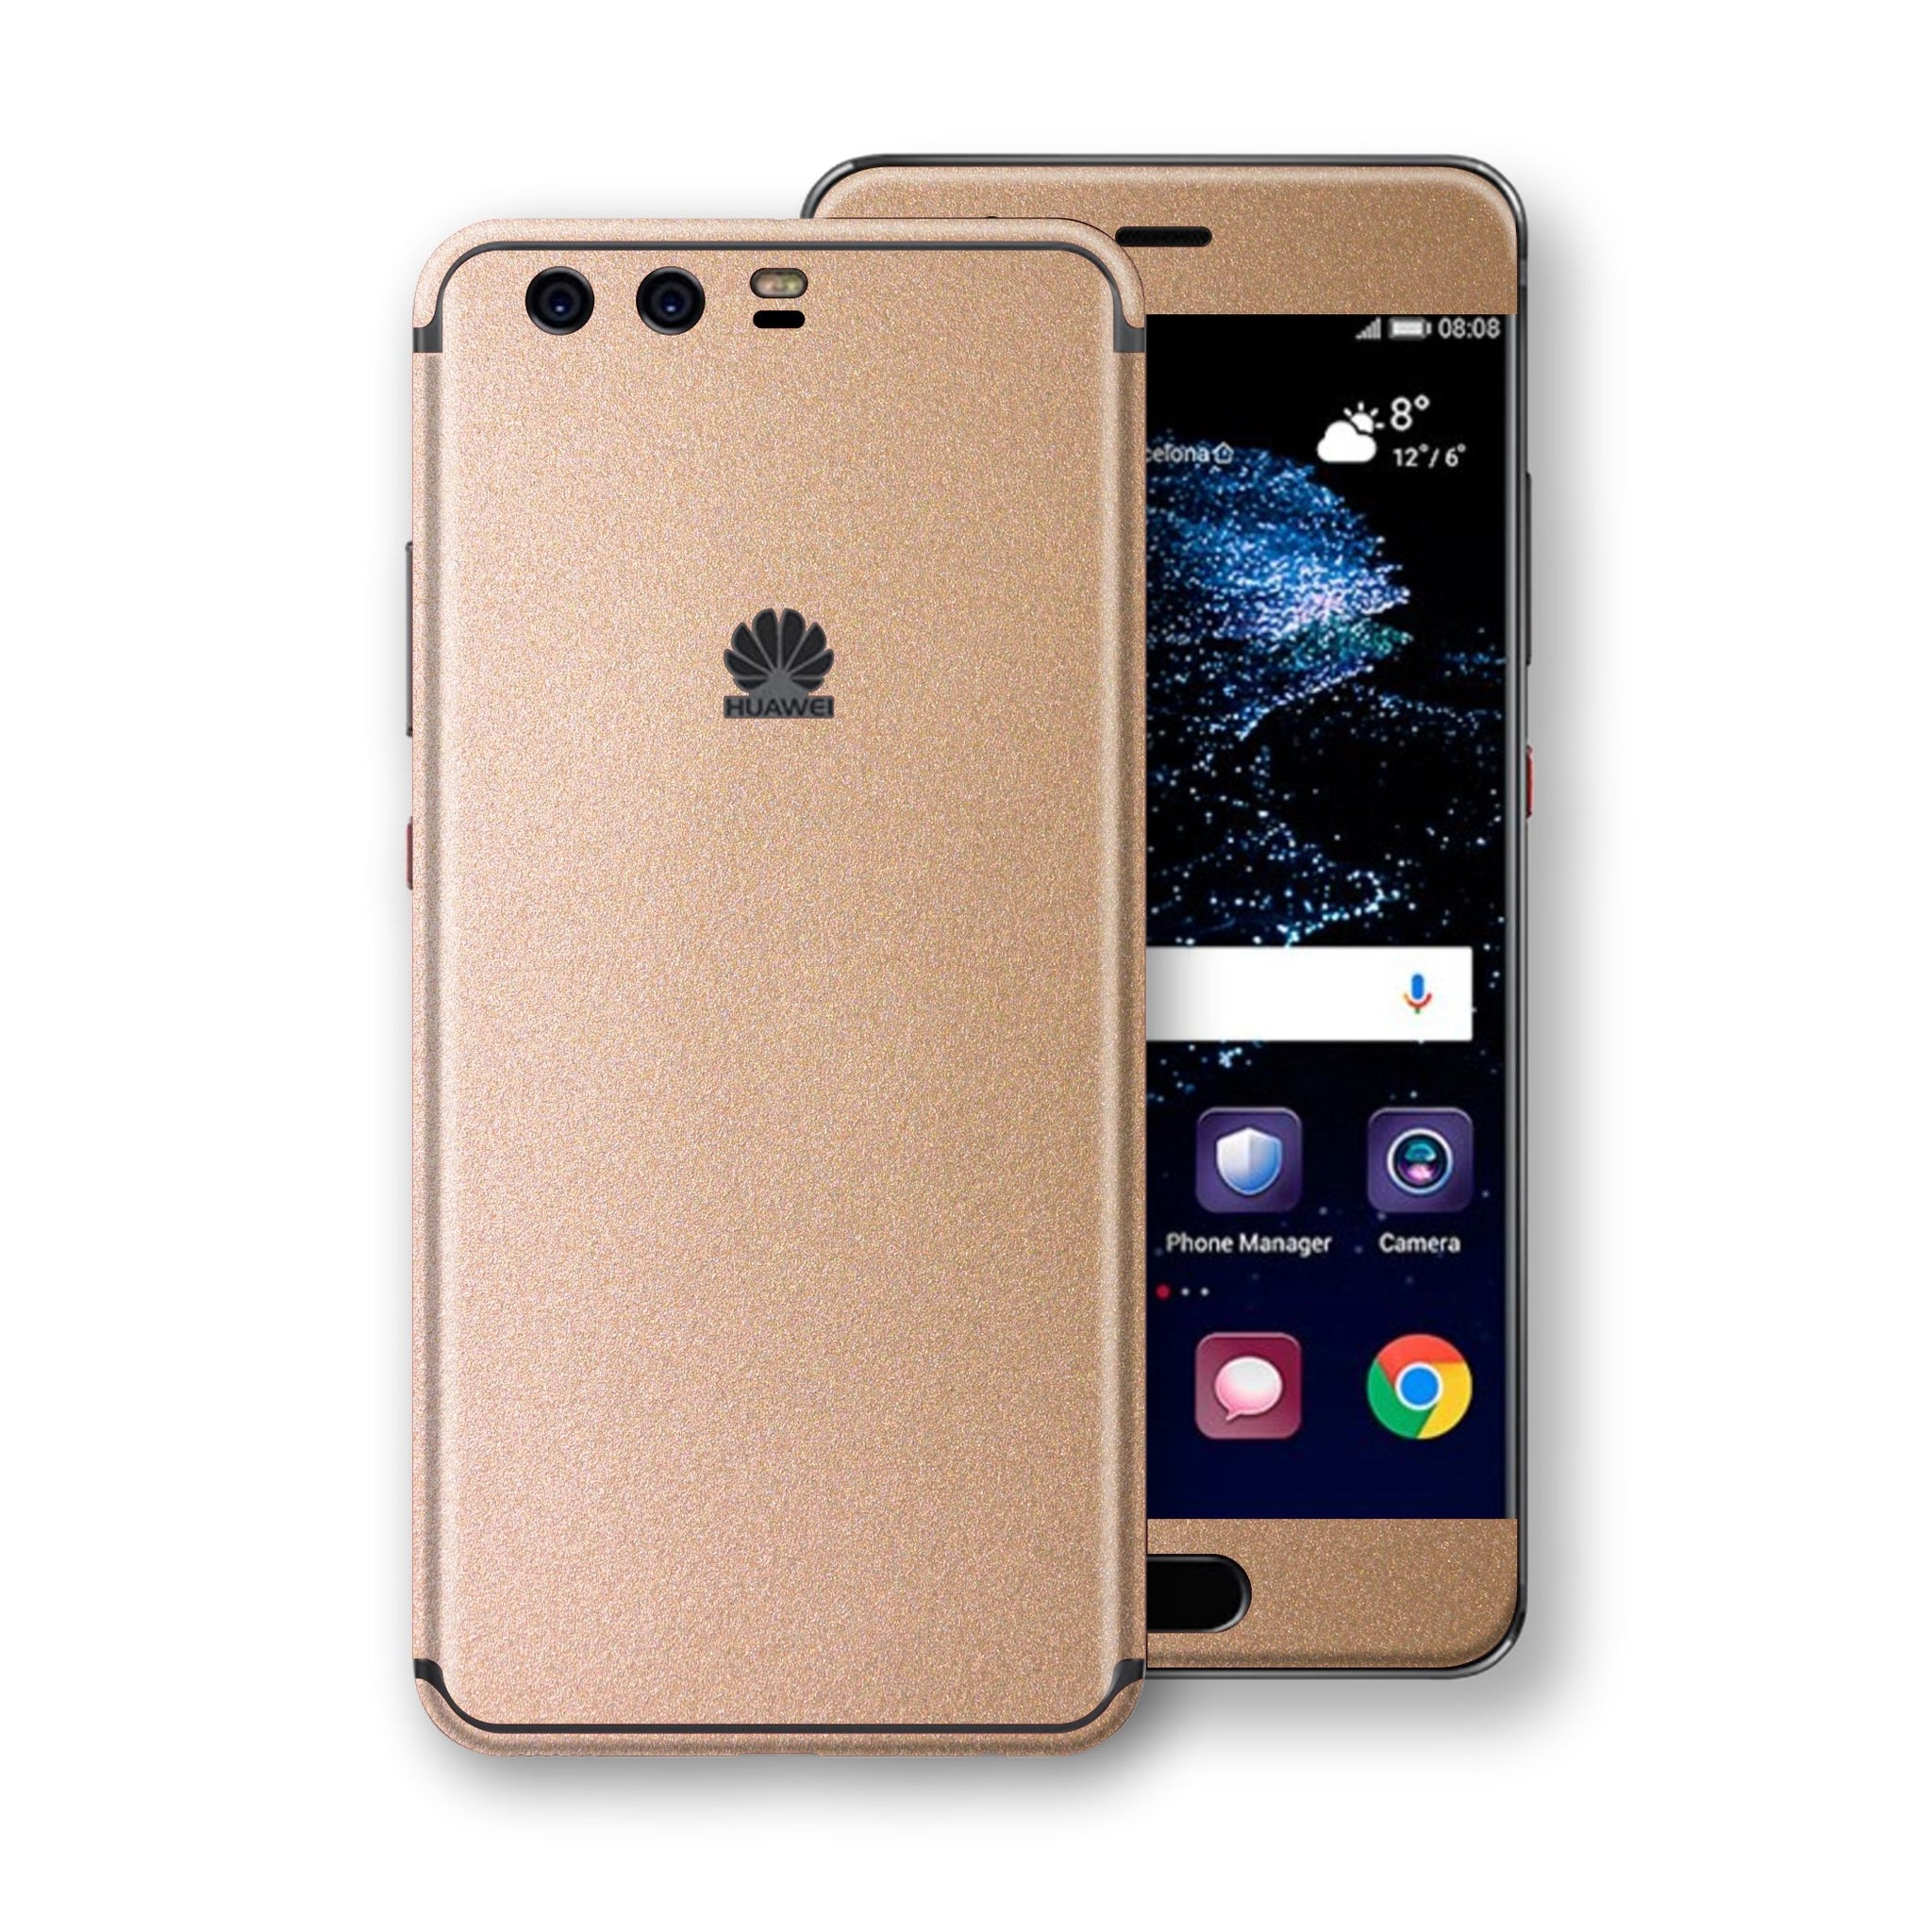 Huawei P10  Luxuria Rose Gold Metallic Skin Wrap Decal Protector | EasySkinz